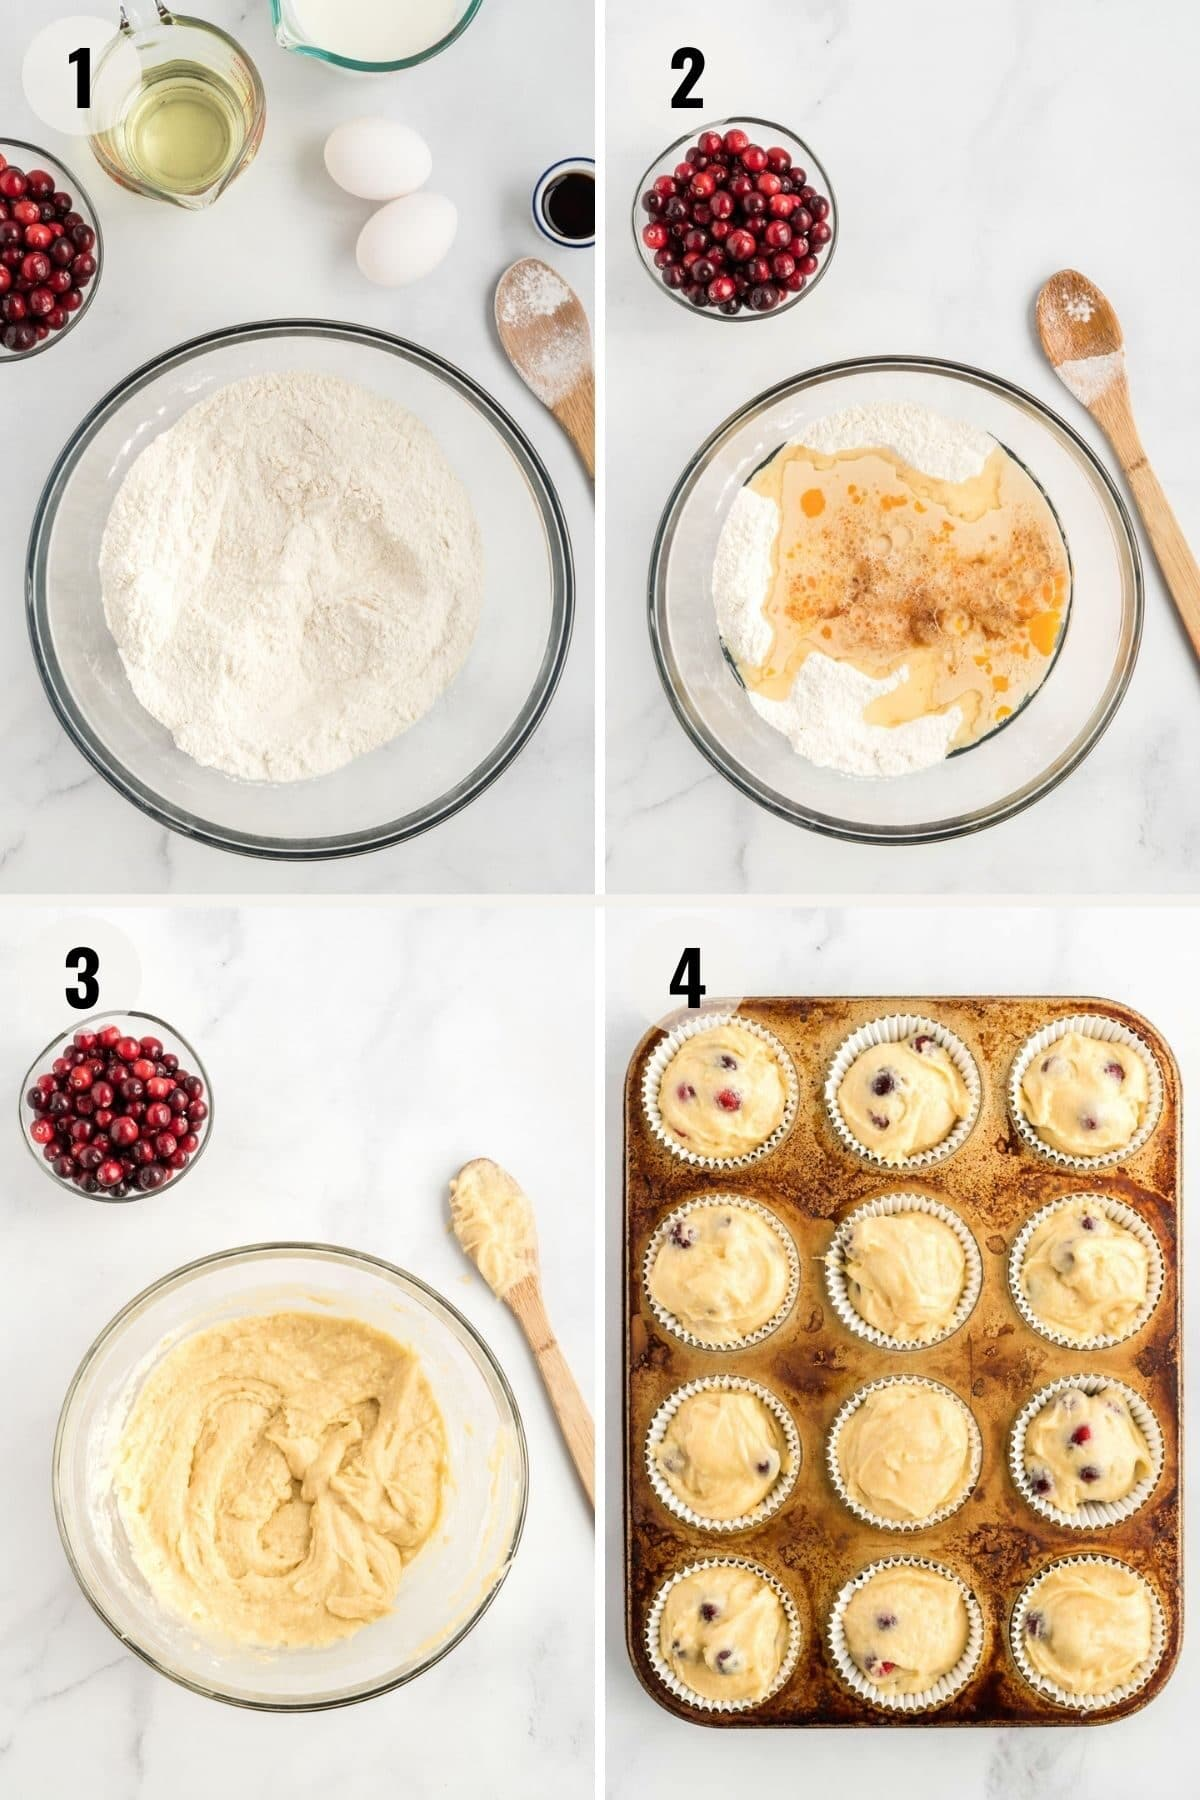 step by step photos showing cranberry muffin batter being made